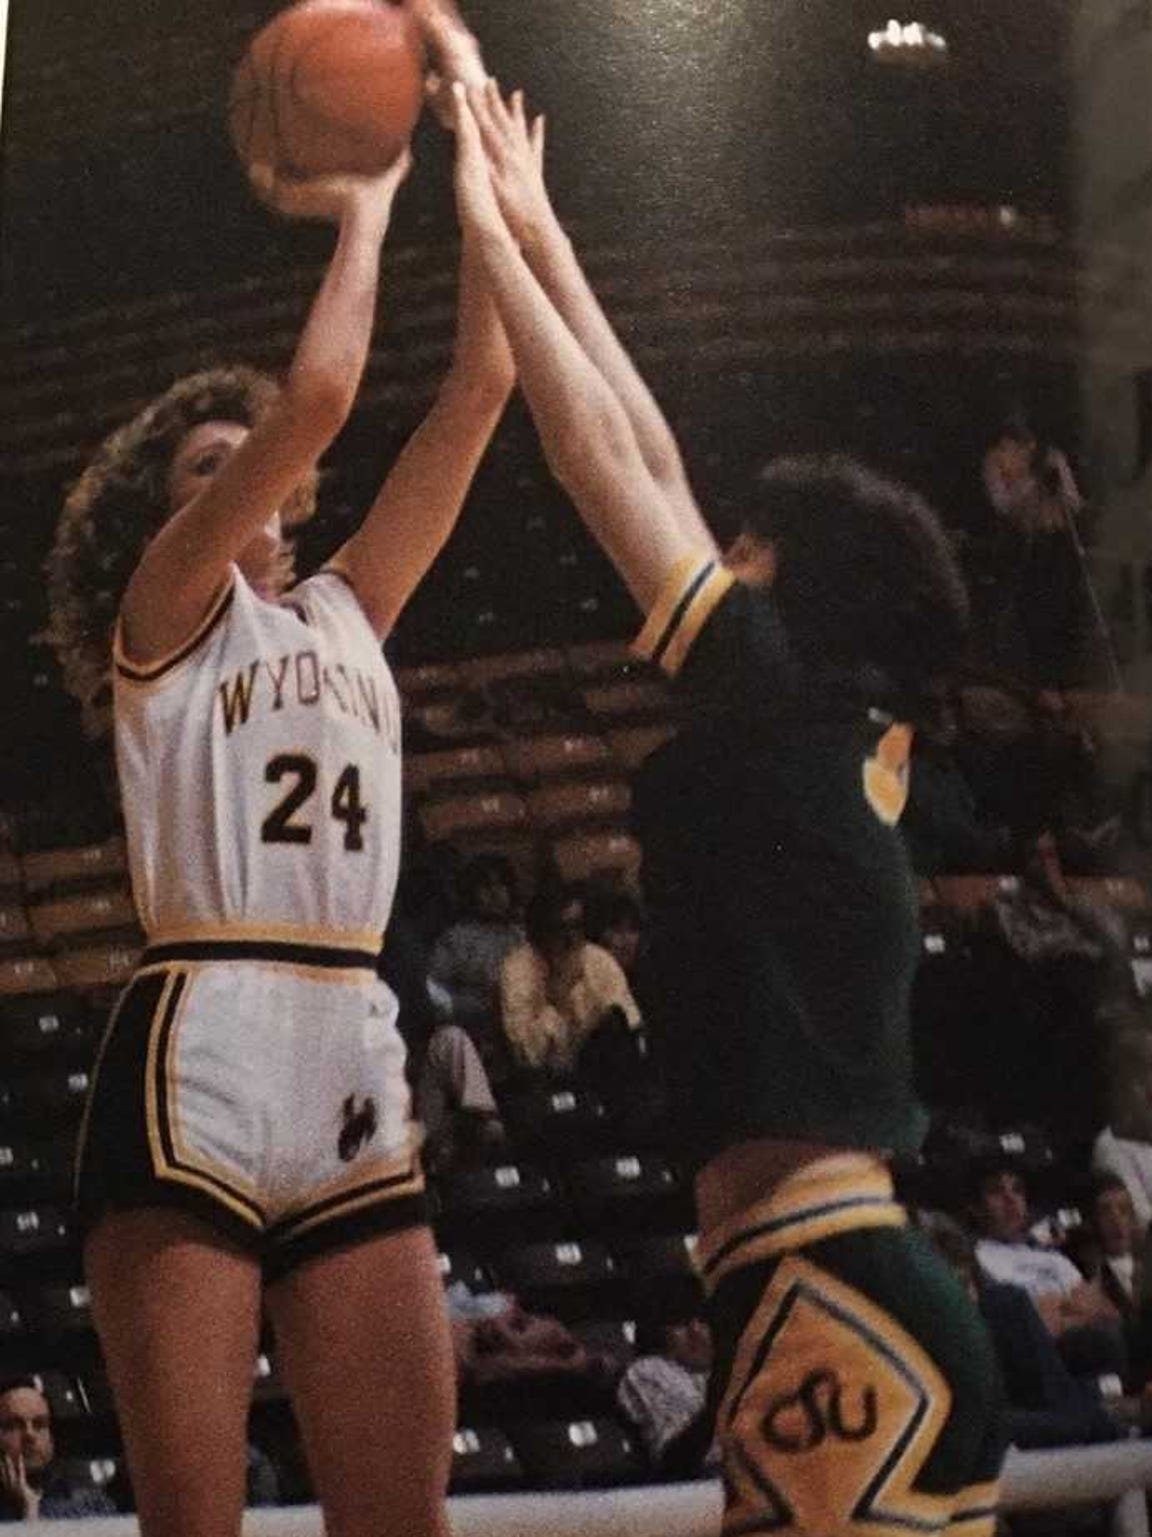 Michele Daum (24) was a standout basketball player